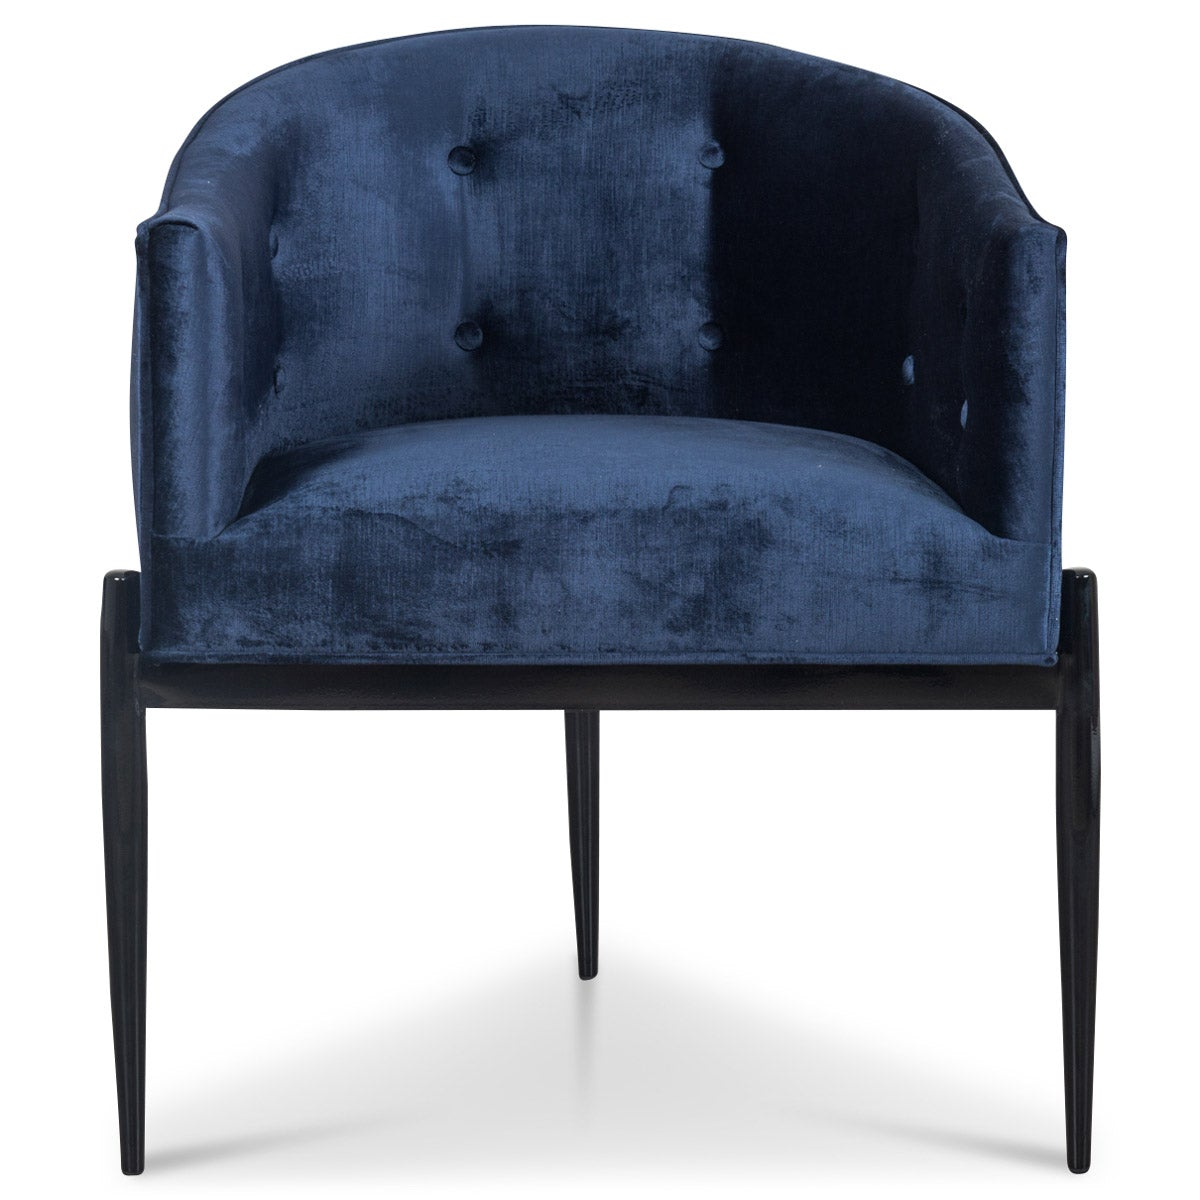 Art Deco Dining Chair in Brussels Midnight Velvet - ModShop1.com